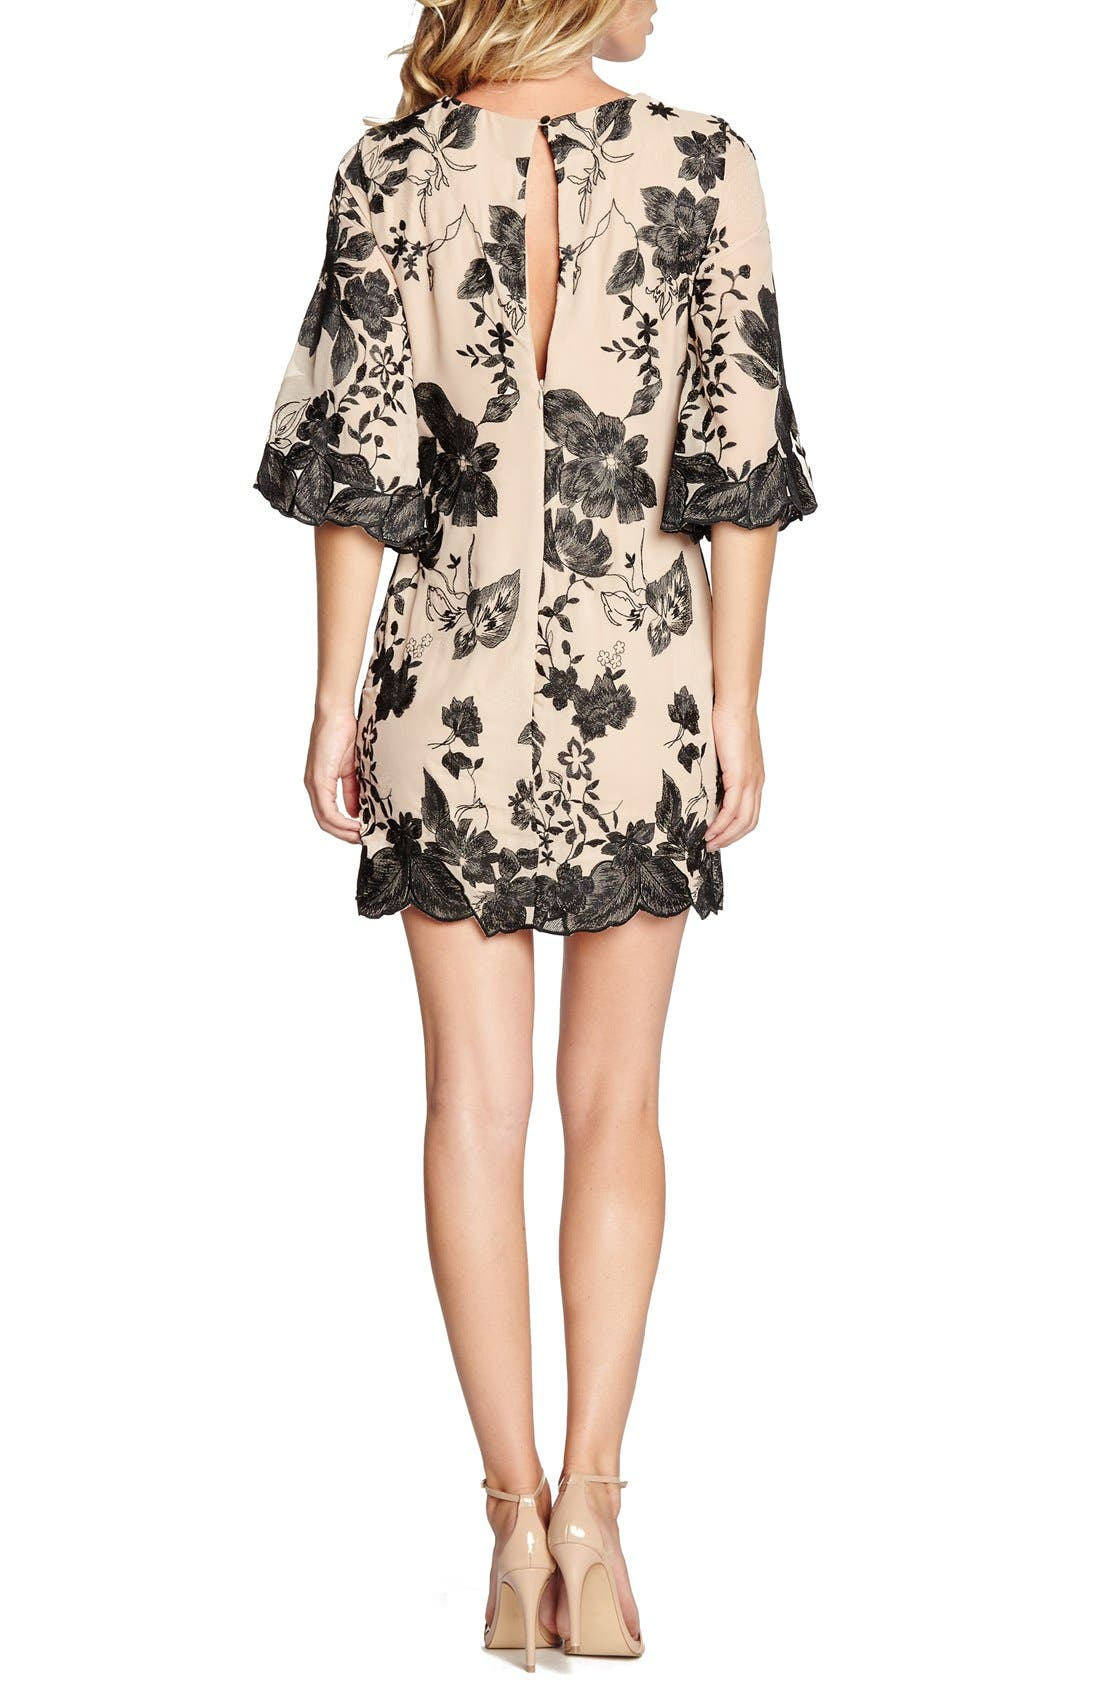 'Paige' Metallic Embroidered Chiffon Shift Dress,                             Alternate thumbnail 4, color,                             259